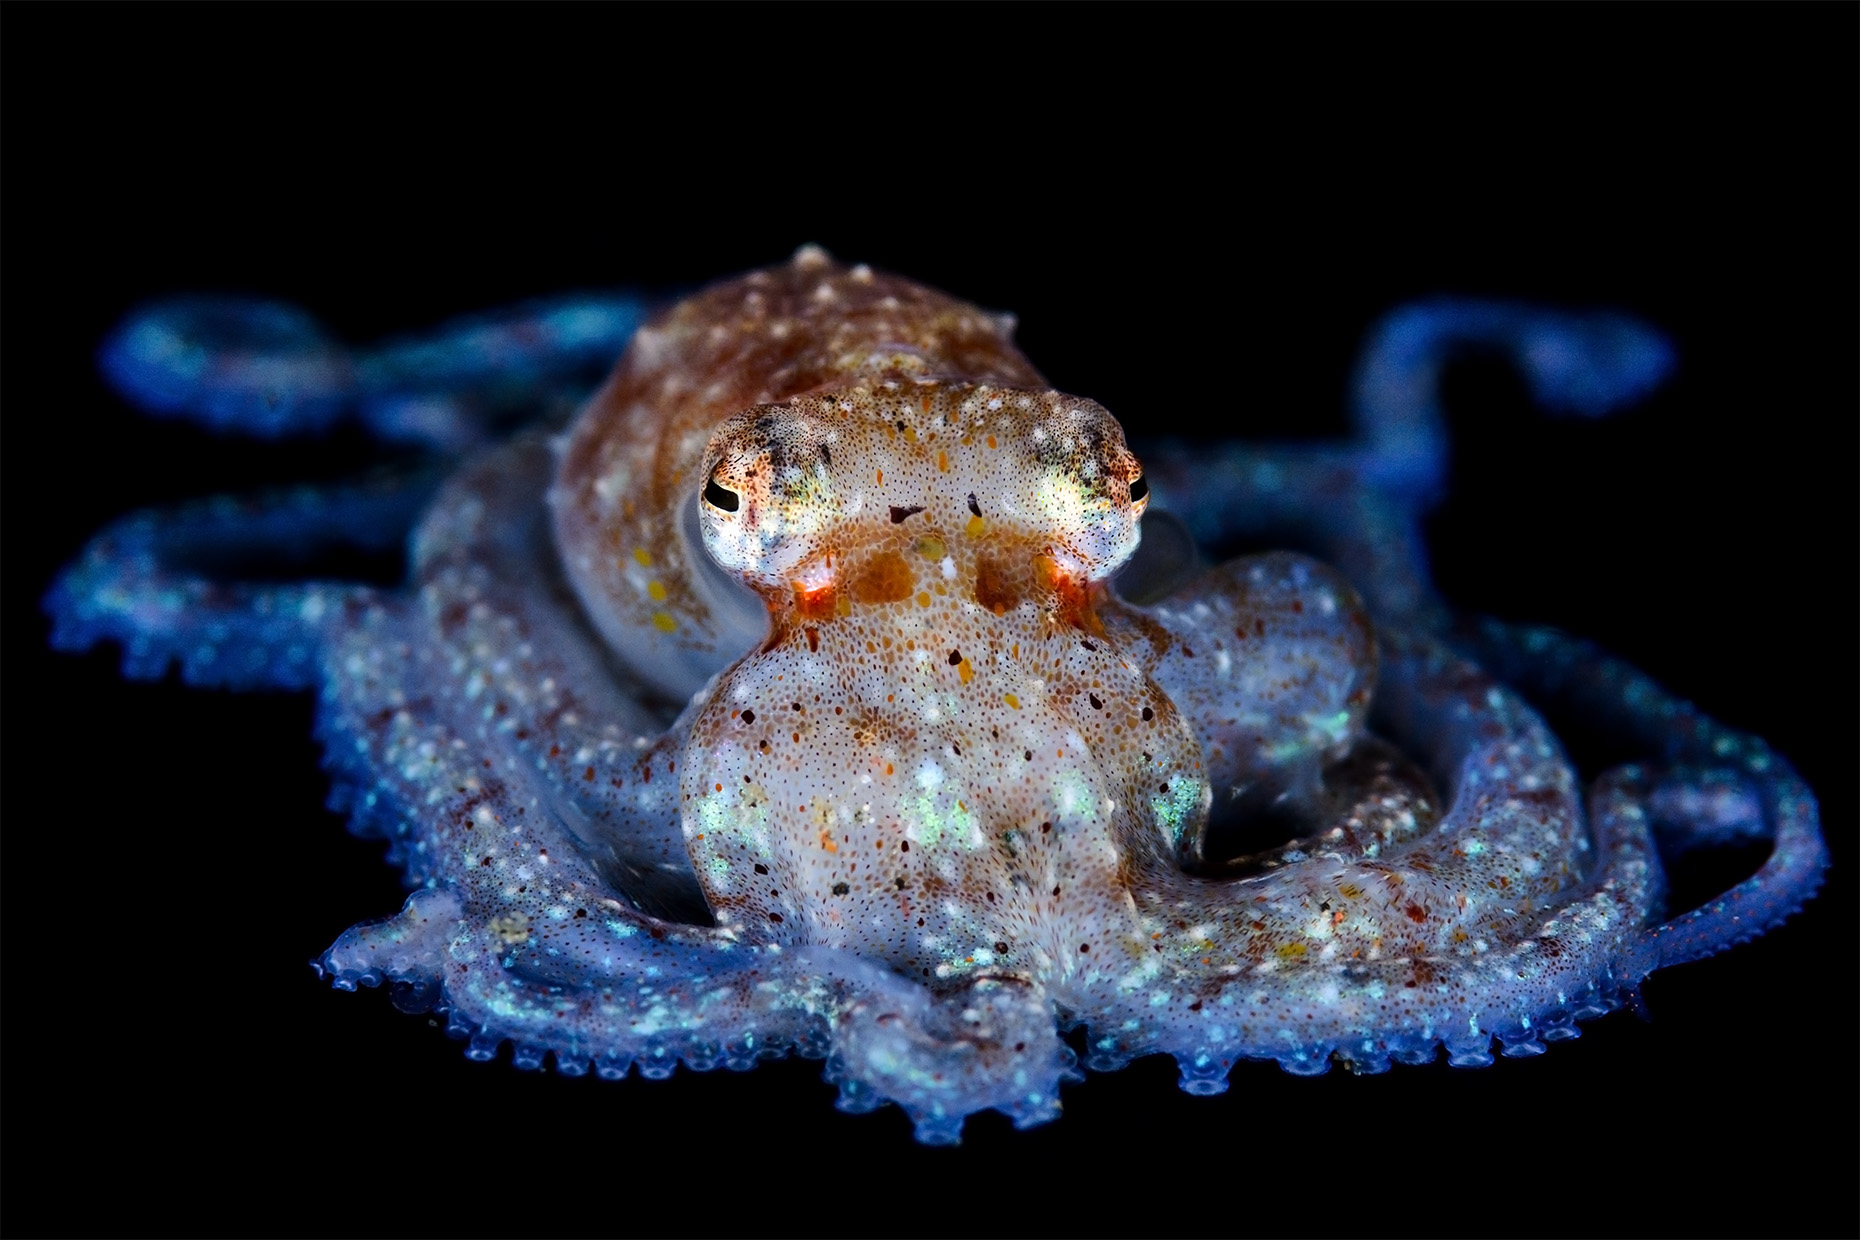 Unidentified pelagic octopus (juvenile)